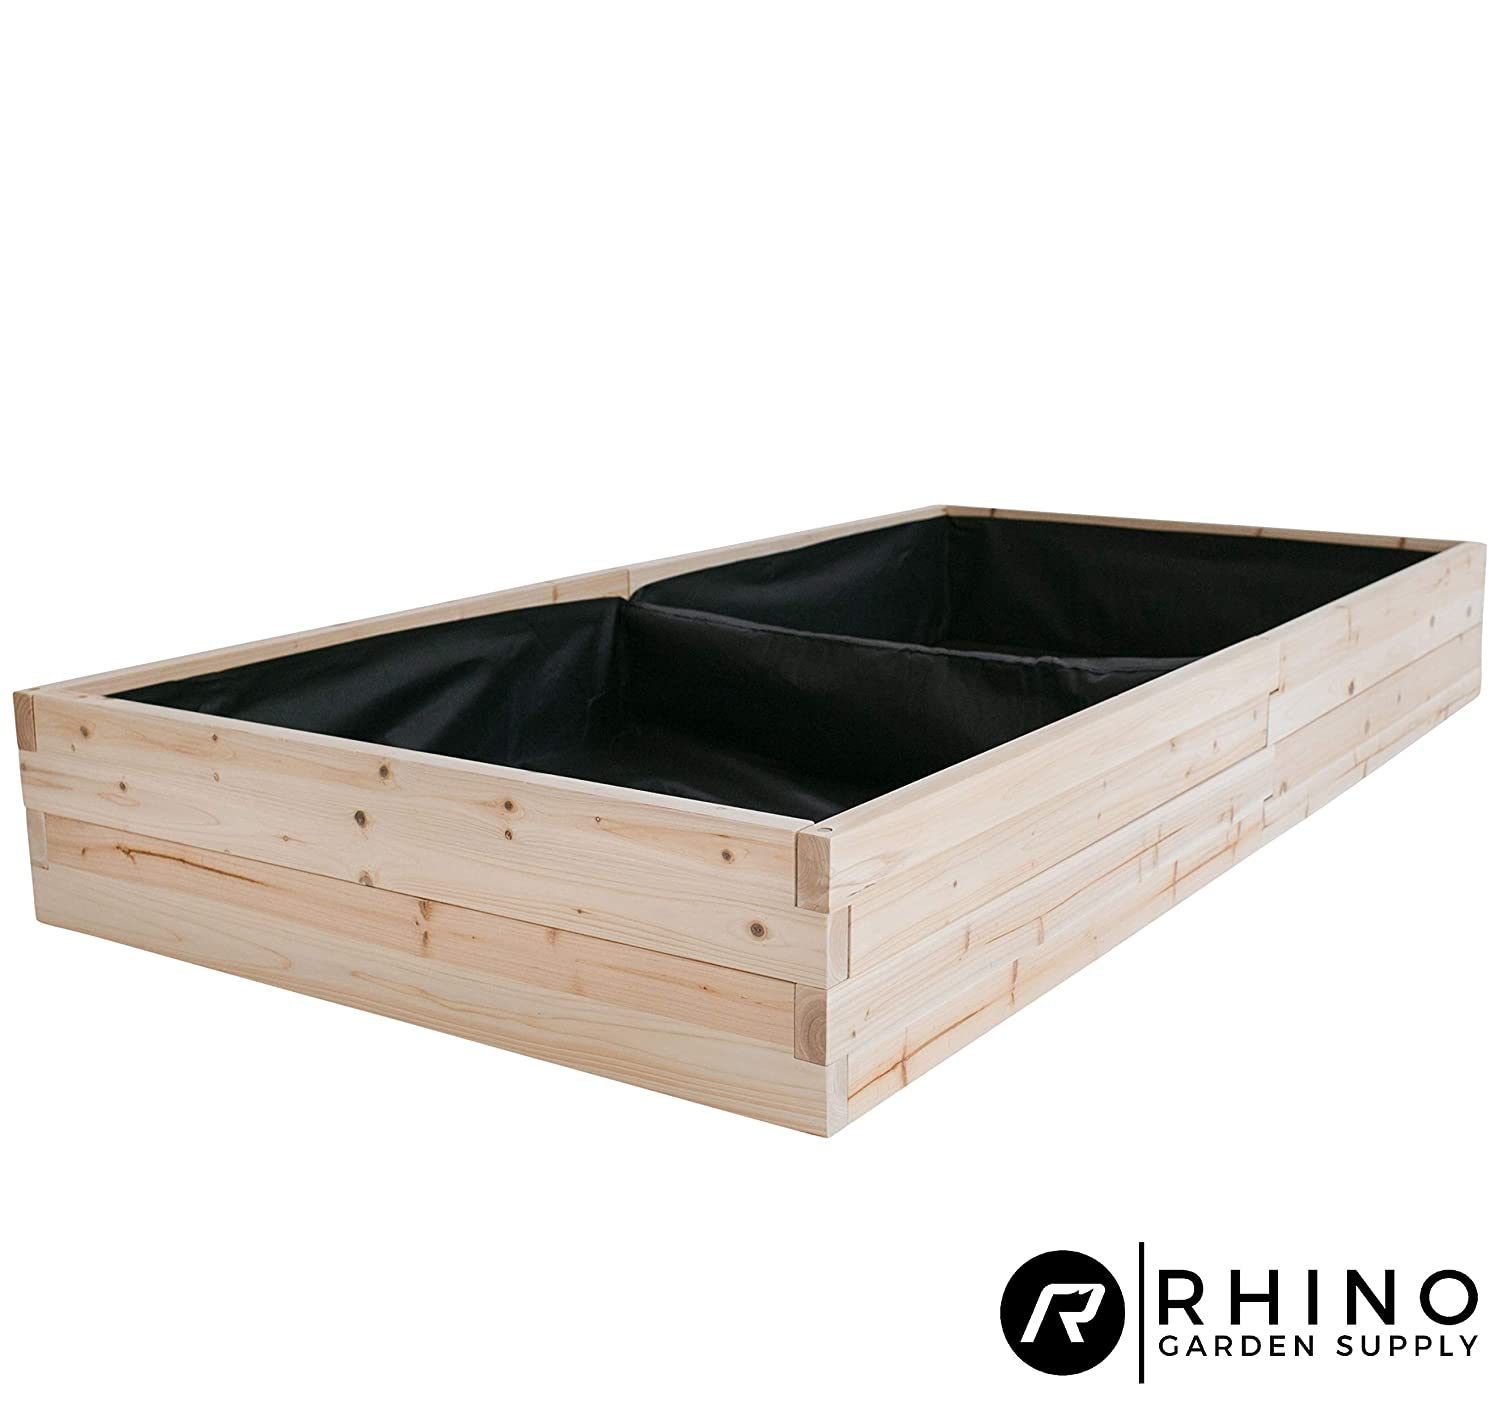 """Cedar Raised Garden Bed Kit (48"""" x 96"""" x 12""""), Weed Barrier Included - Unmatched Strength, Thicker Than All Other Elevated Planters - 100% Rot Resistant Cedar - Fast Assembly, No Tools Needed"""